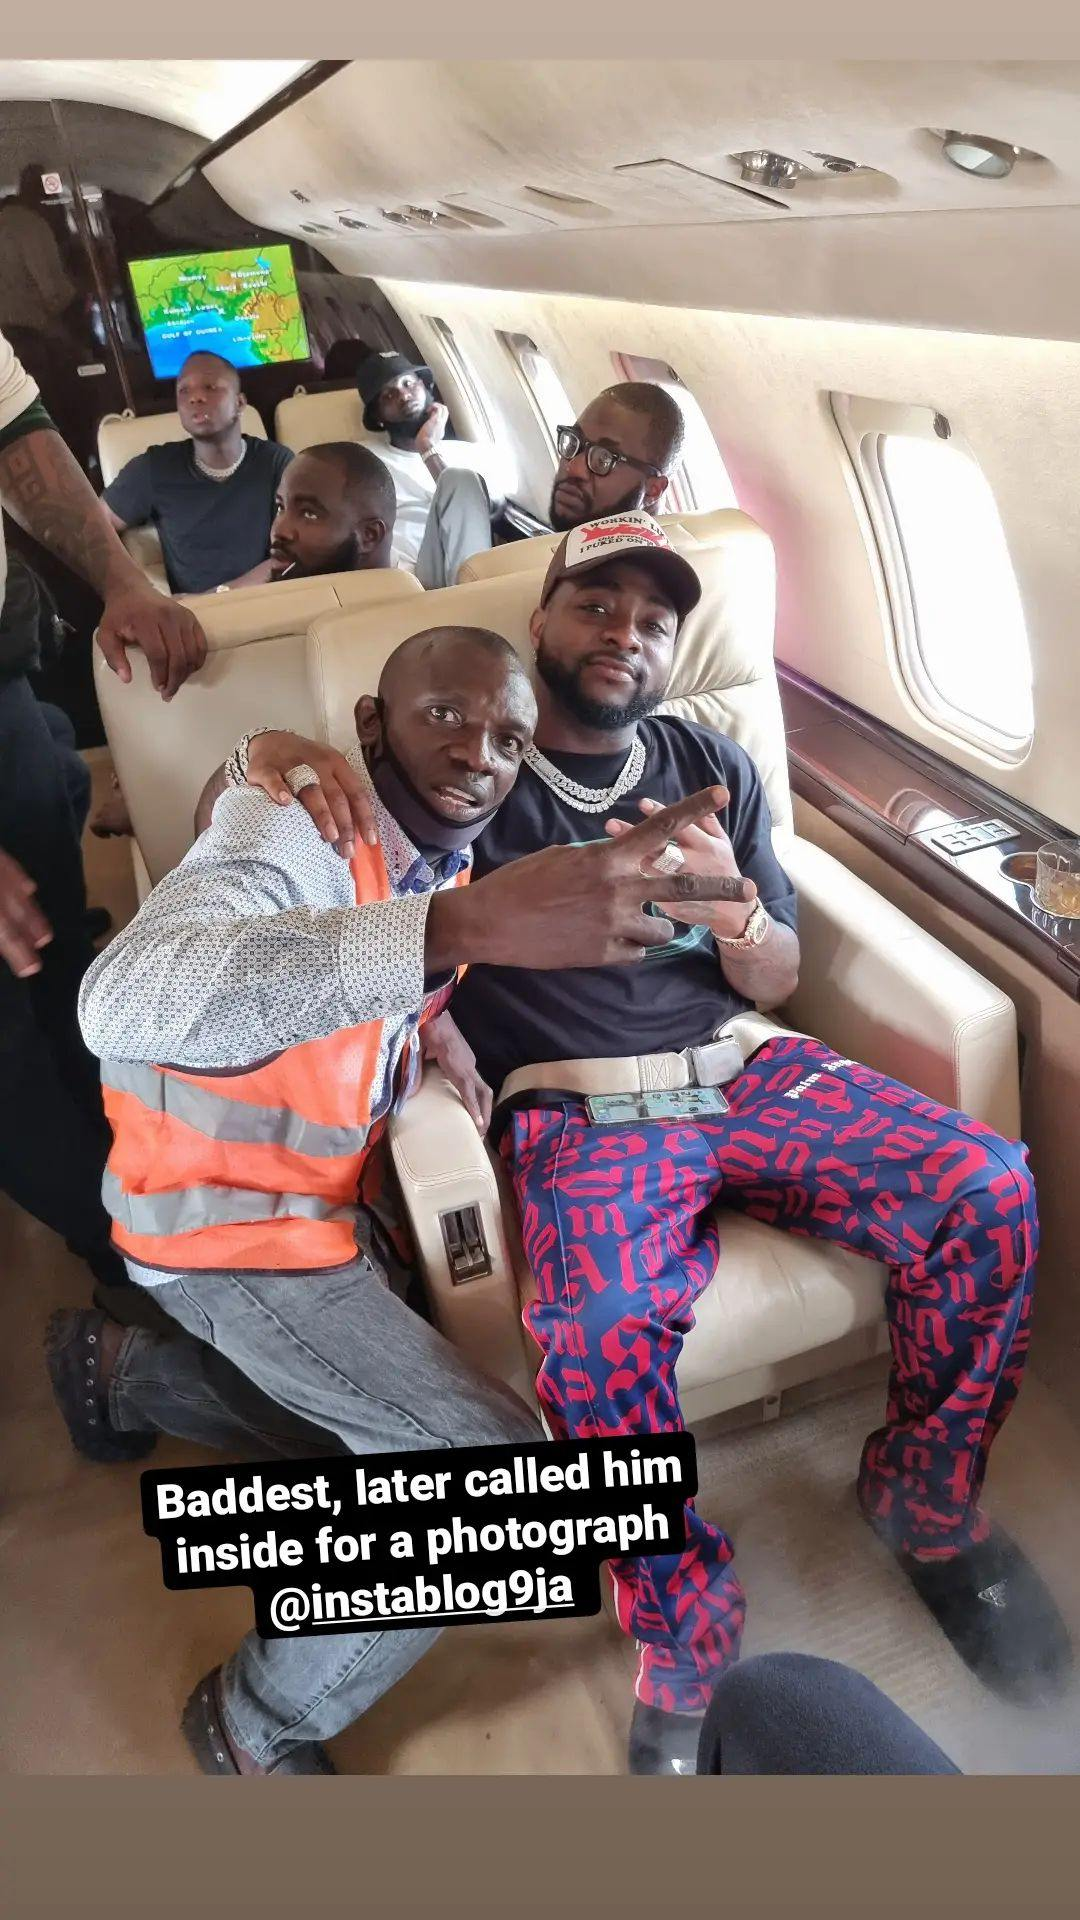 Davido settles with airport official after bodyguard shoved him while trying to take selfie (Video)